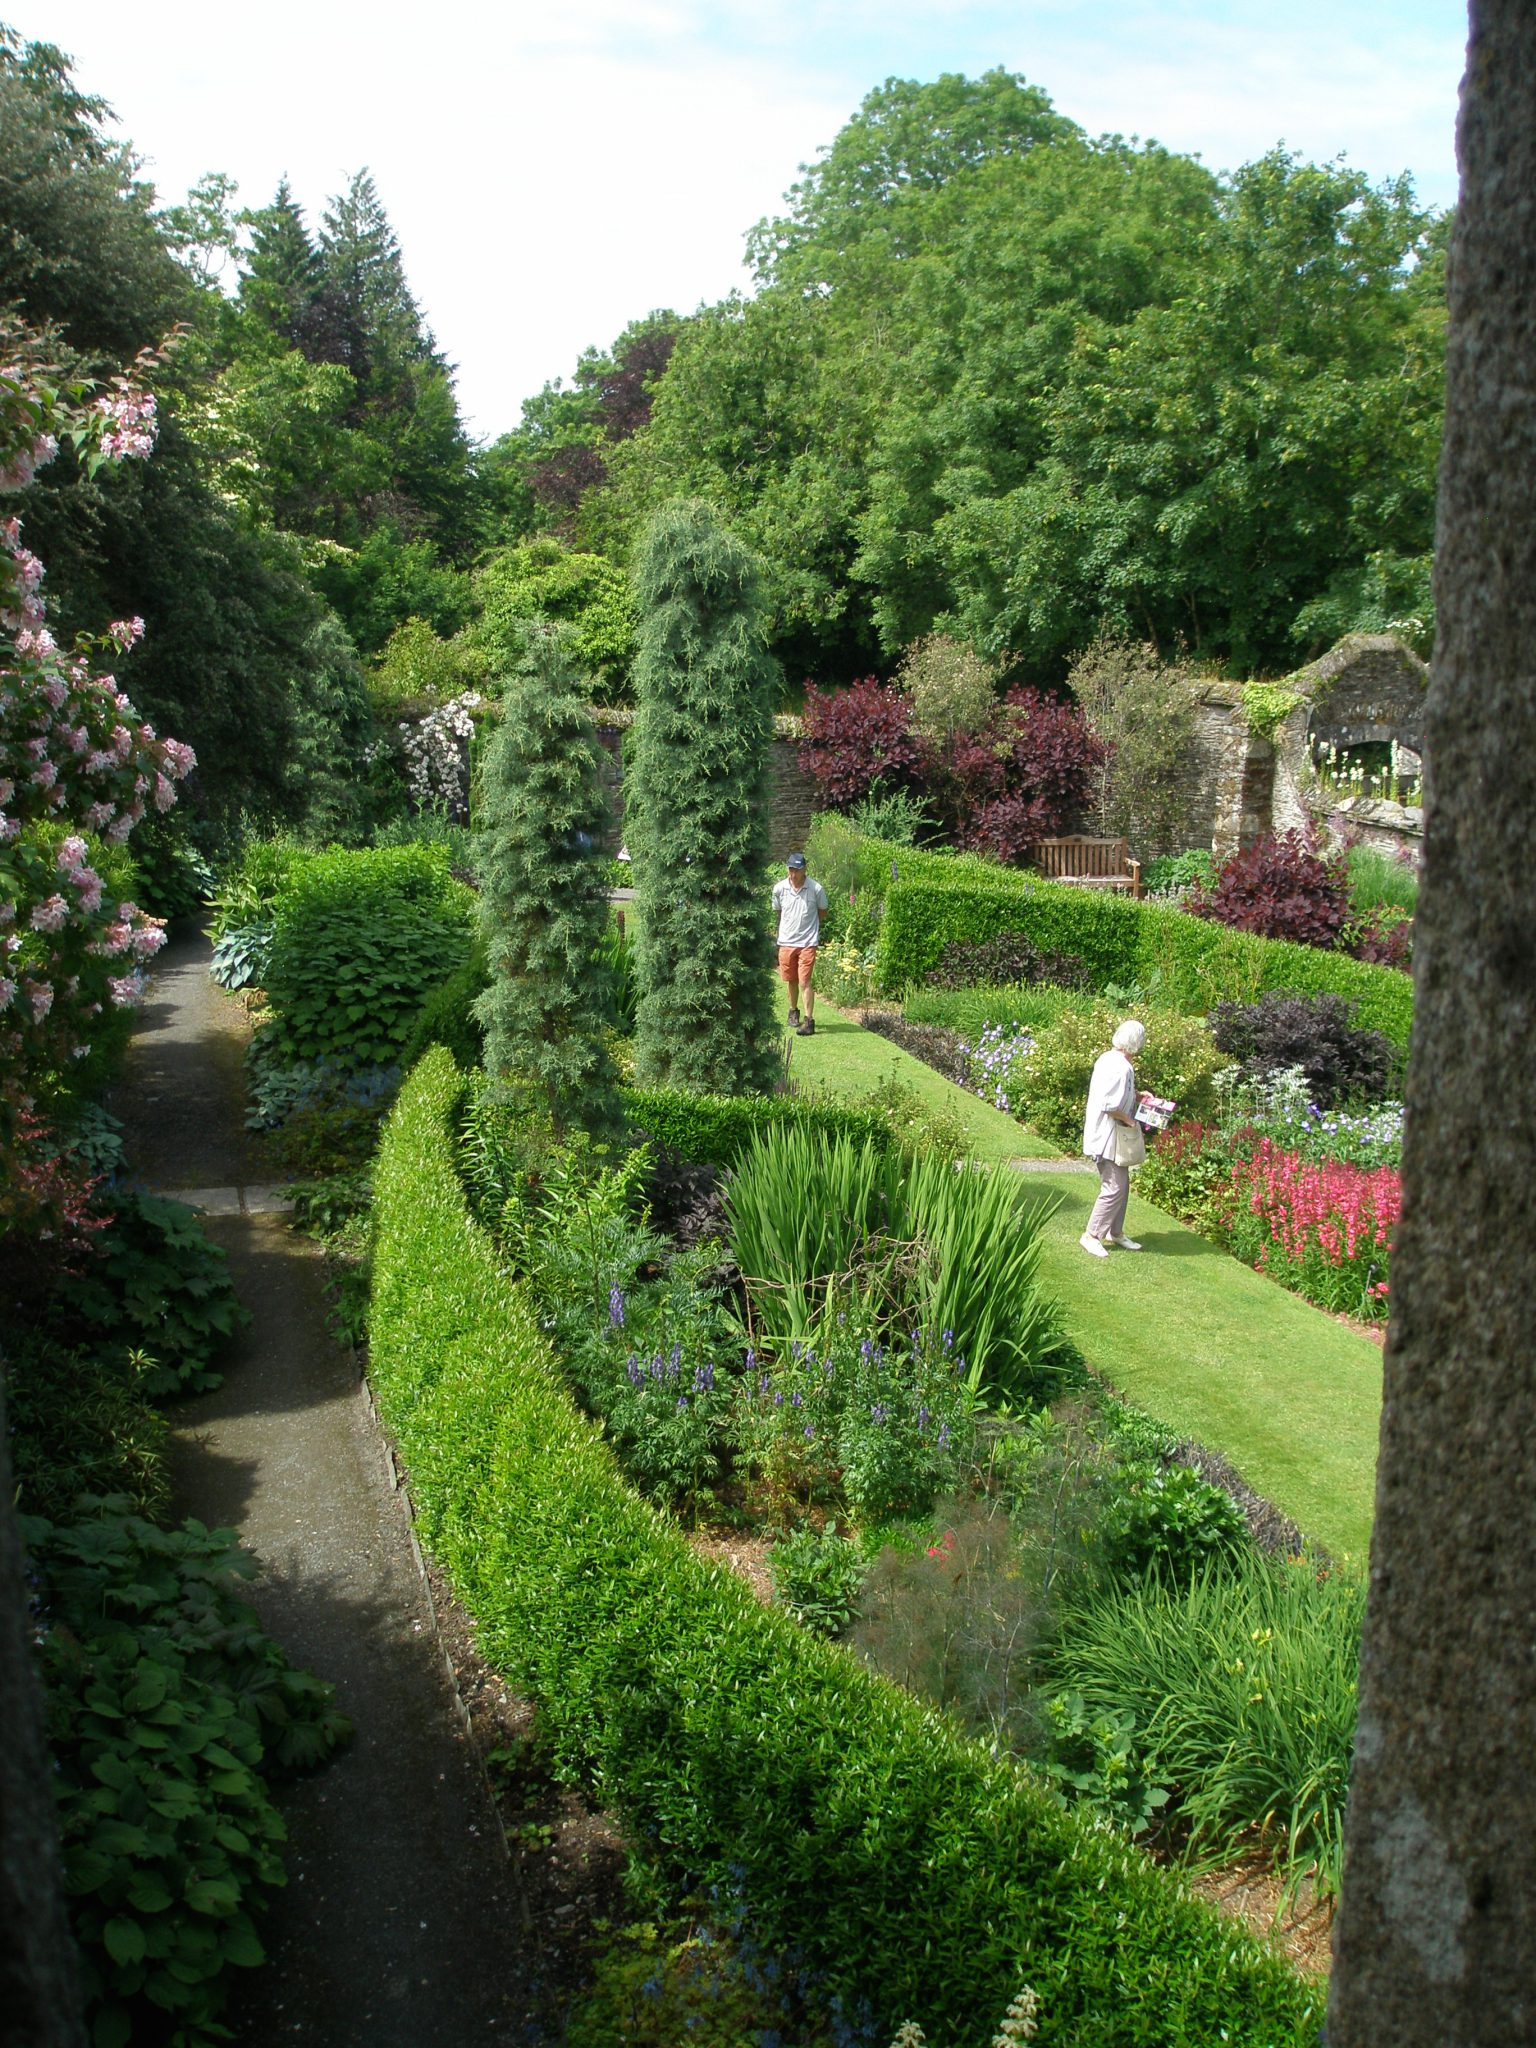 View from inside the Tower, westward, over the Bottom Terrace Garden